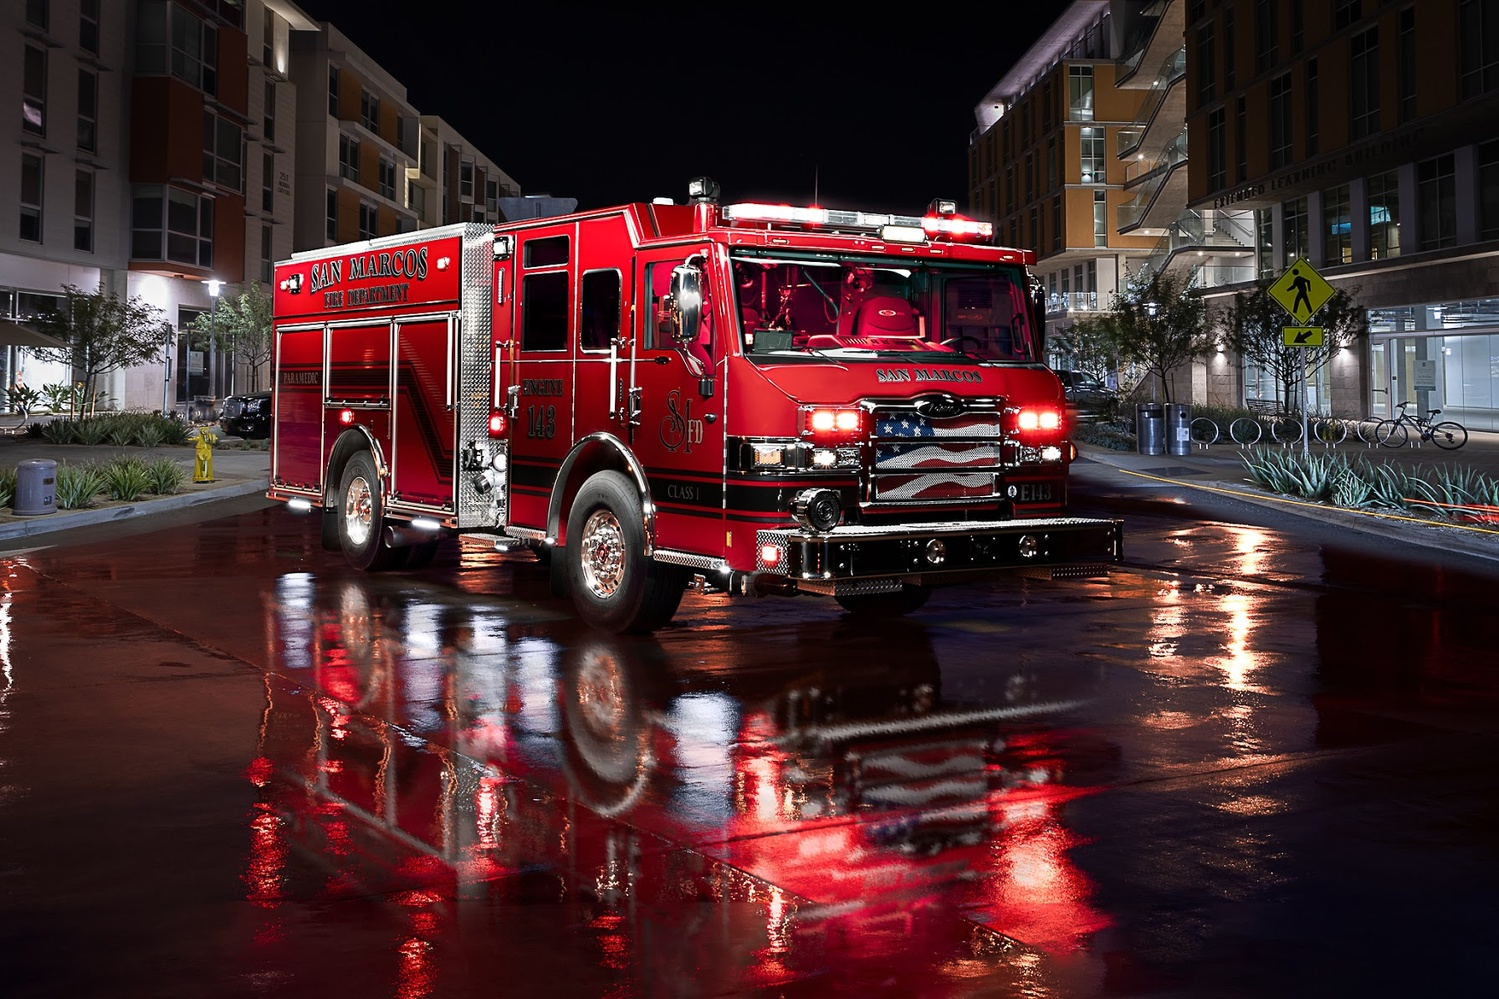 San Marcos Fire Engine 143 by Creigh McIntyre